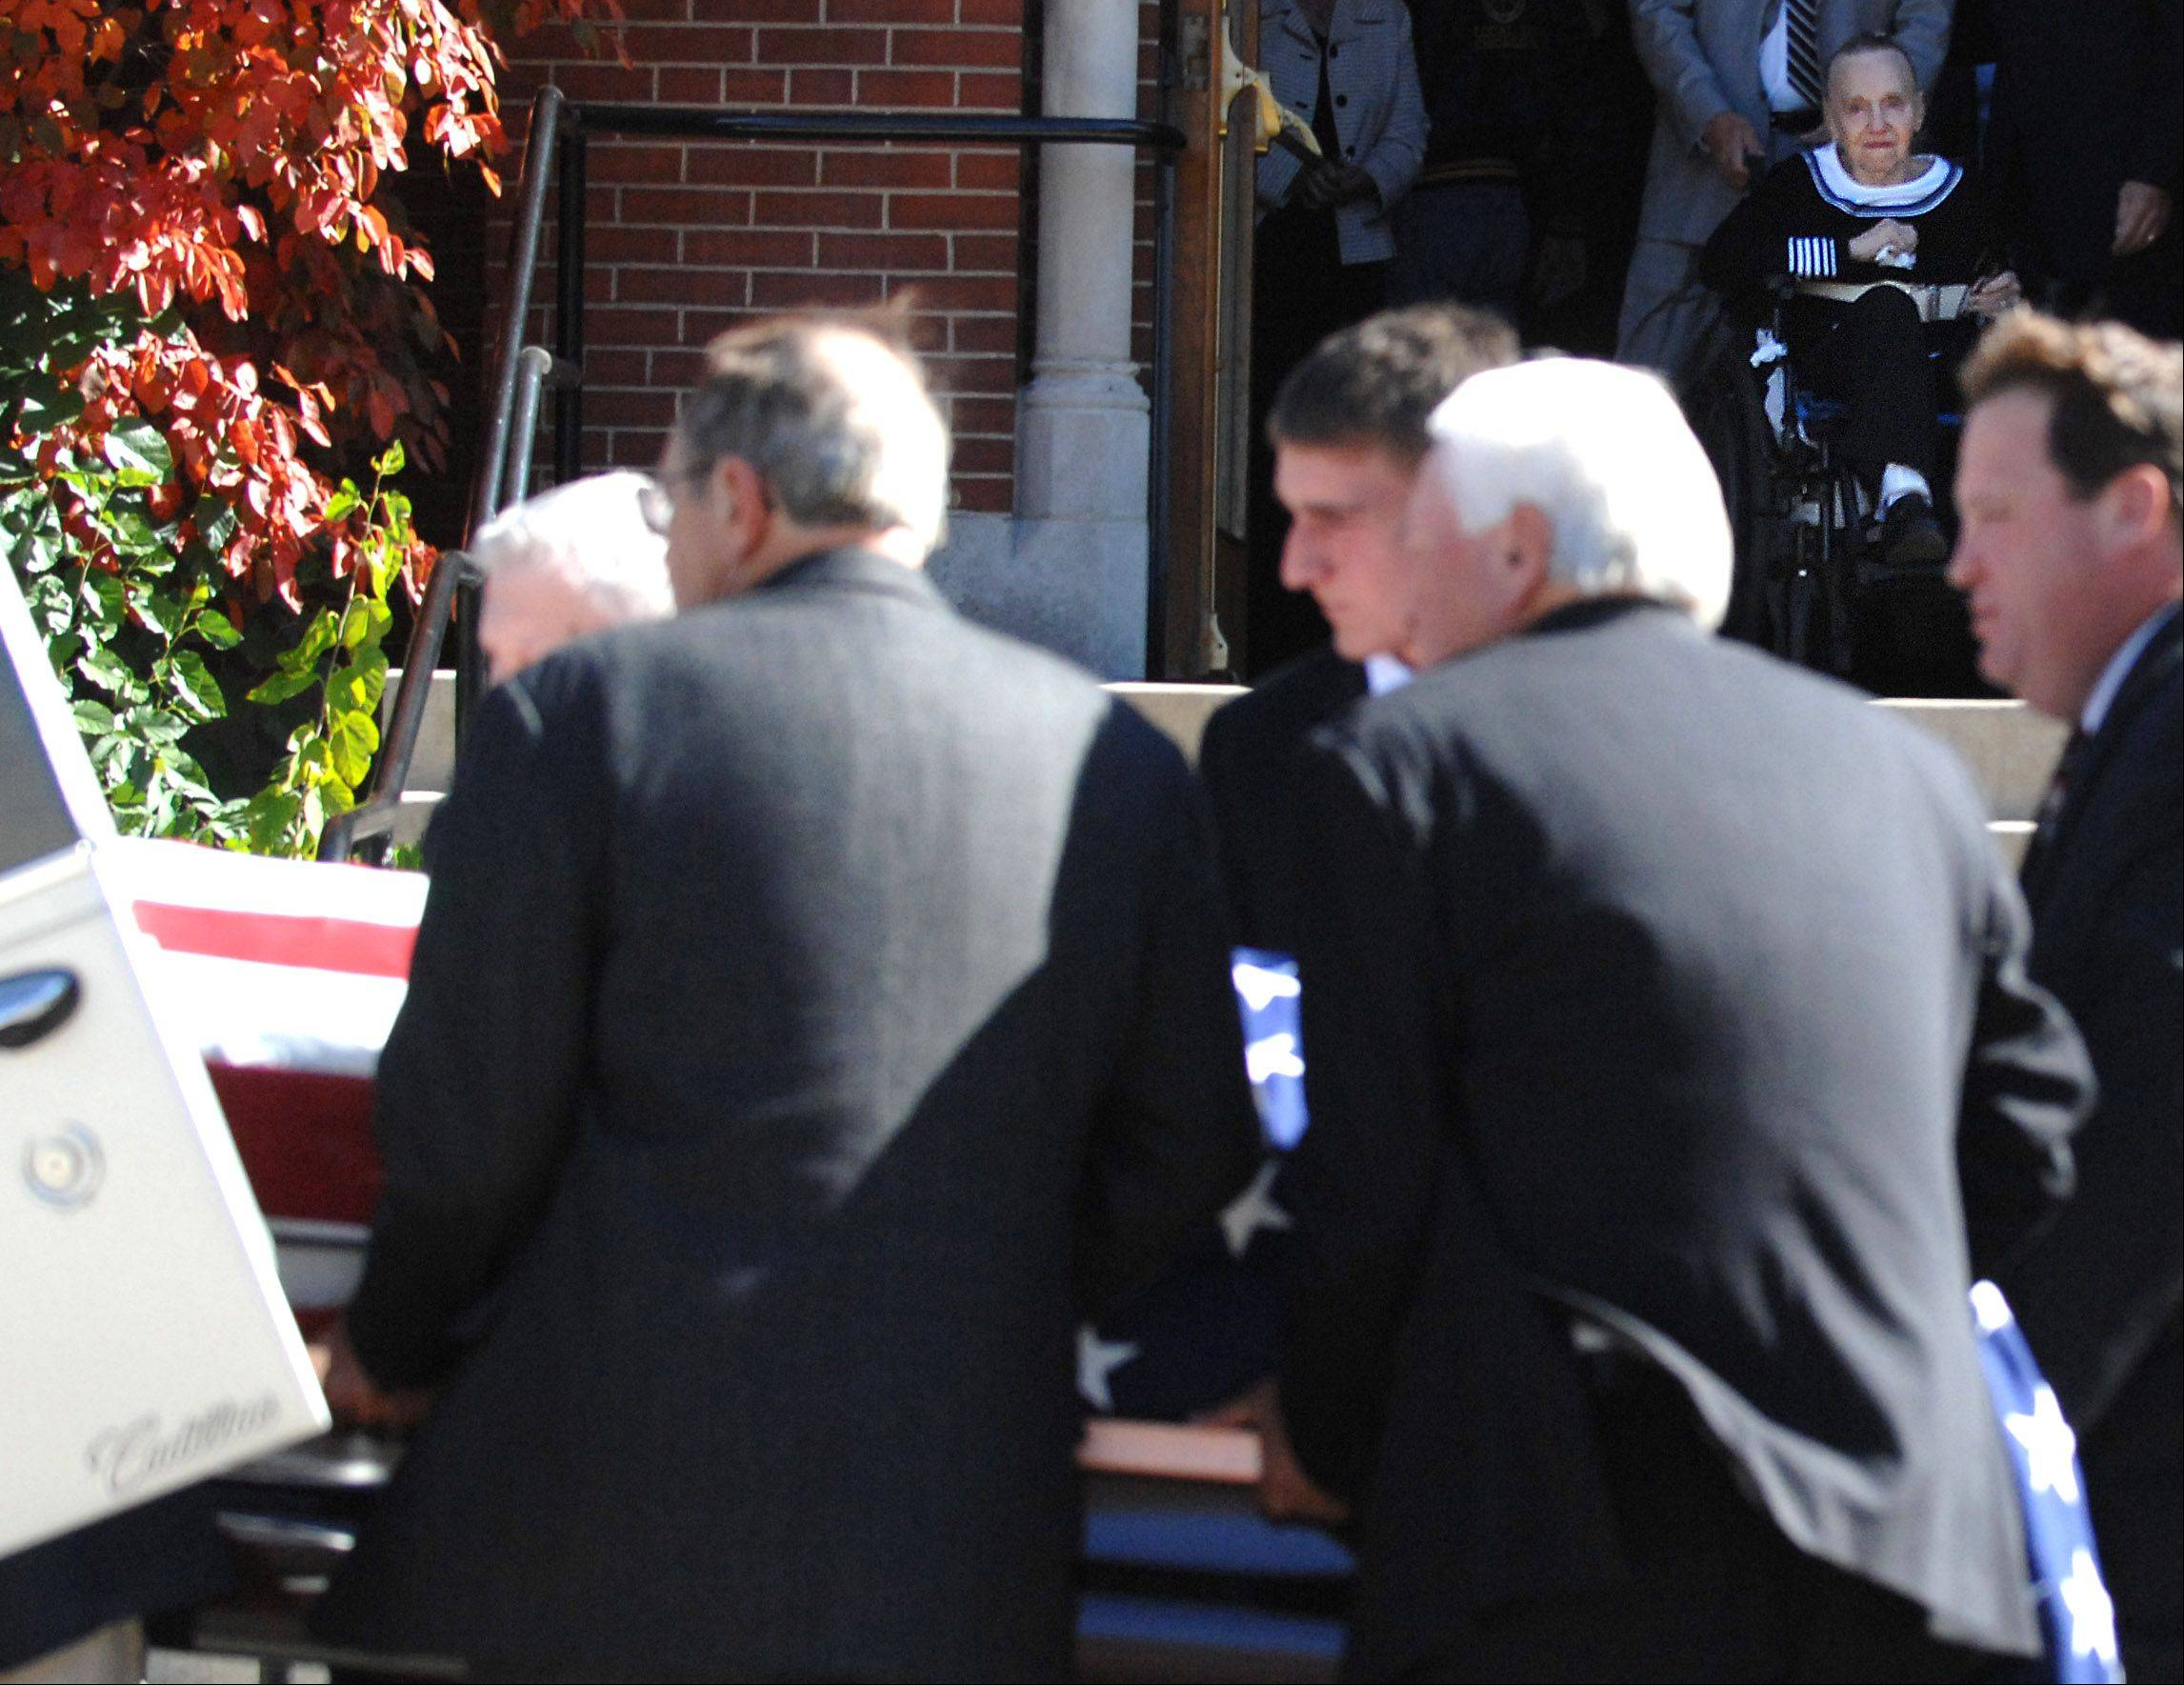 Theresa Kudlicki watches as the casket holding her husband, Robert, is placed in a hearse following his funeral at St. Charles Borromeo Catholic Church in Hampshire Monday. Robert Kudlicki was a two-term mayor of Hampshire and two-term Kane County Board member. The Kudlickis celebrated their 59th wedding anniversary in August.